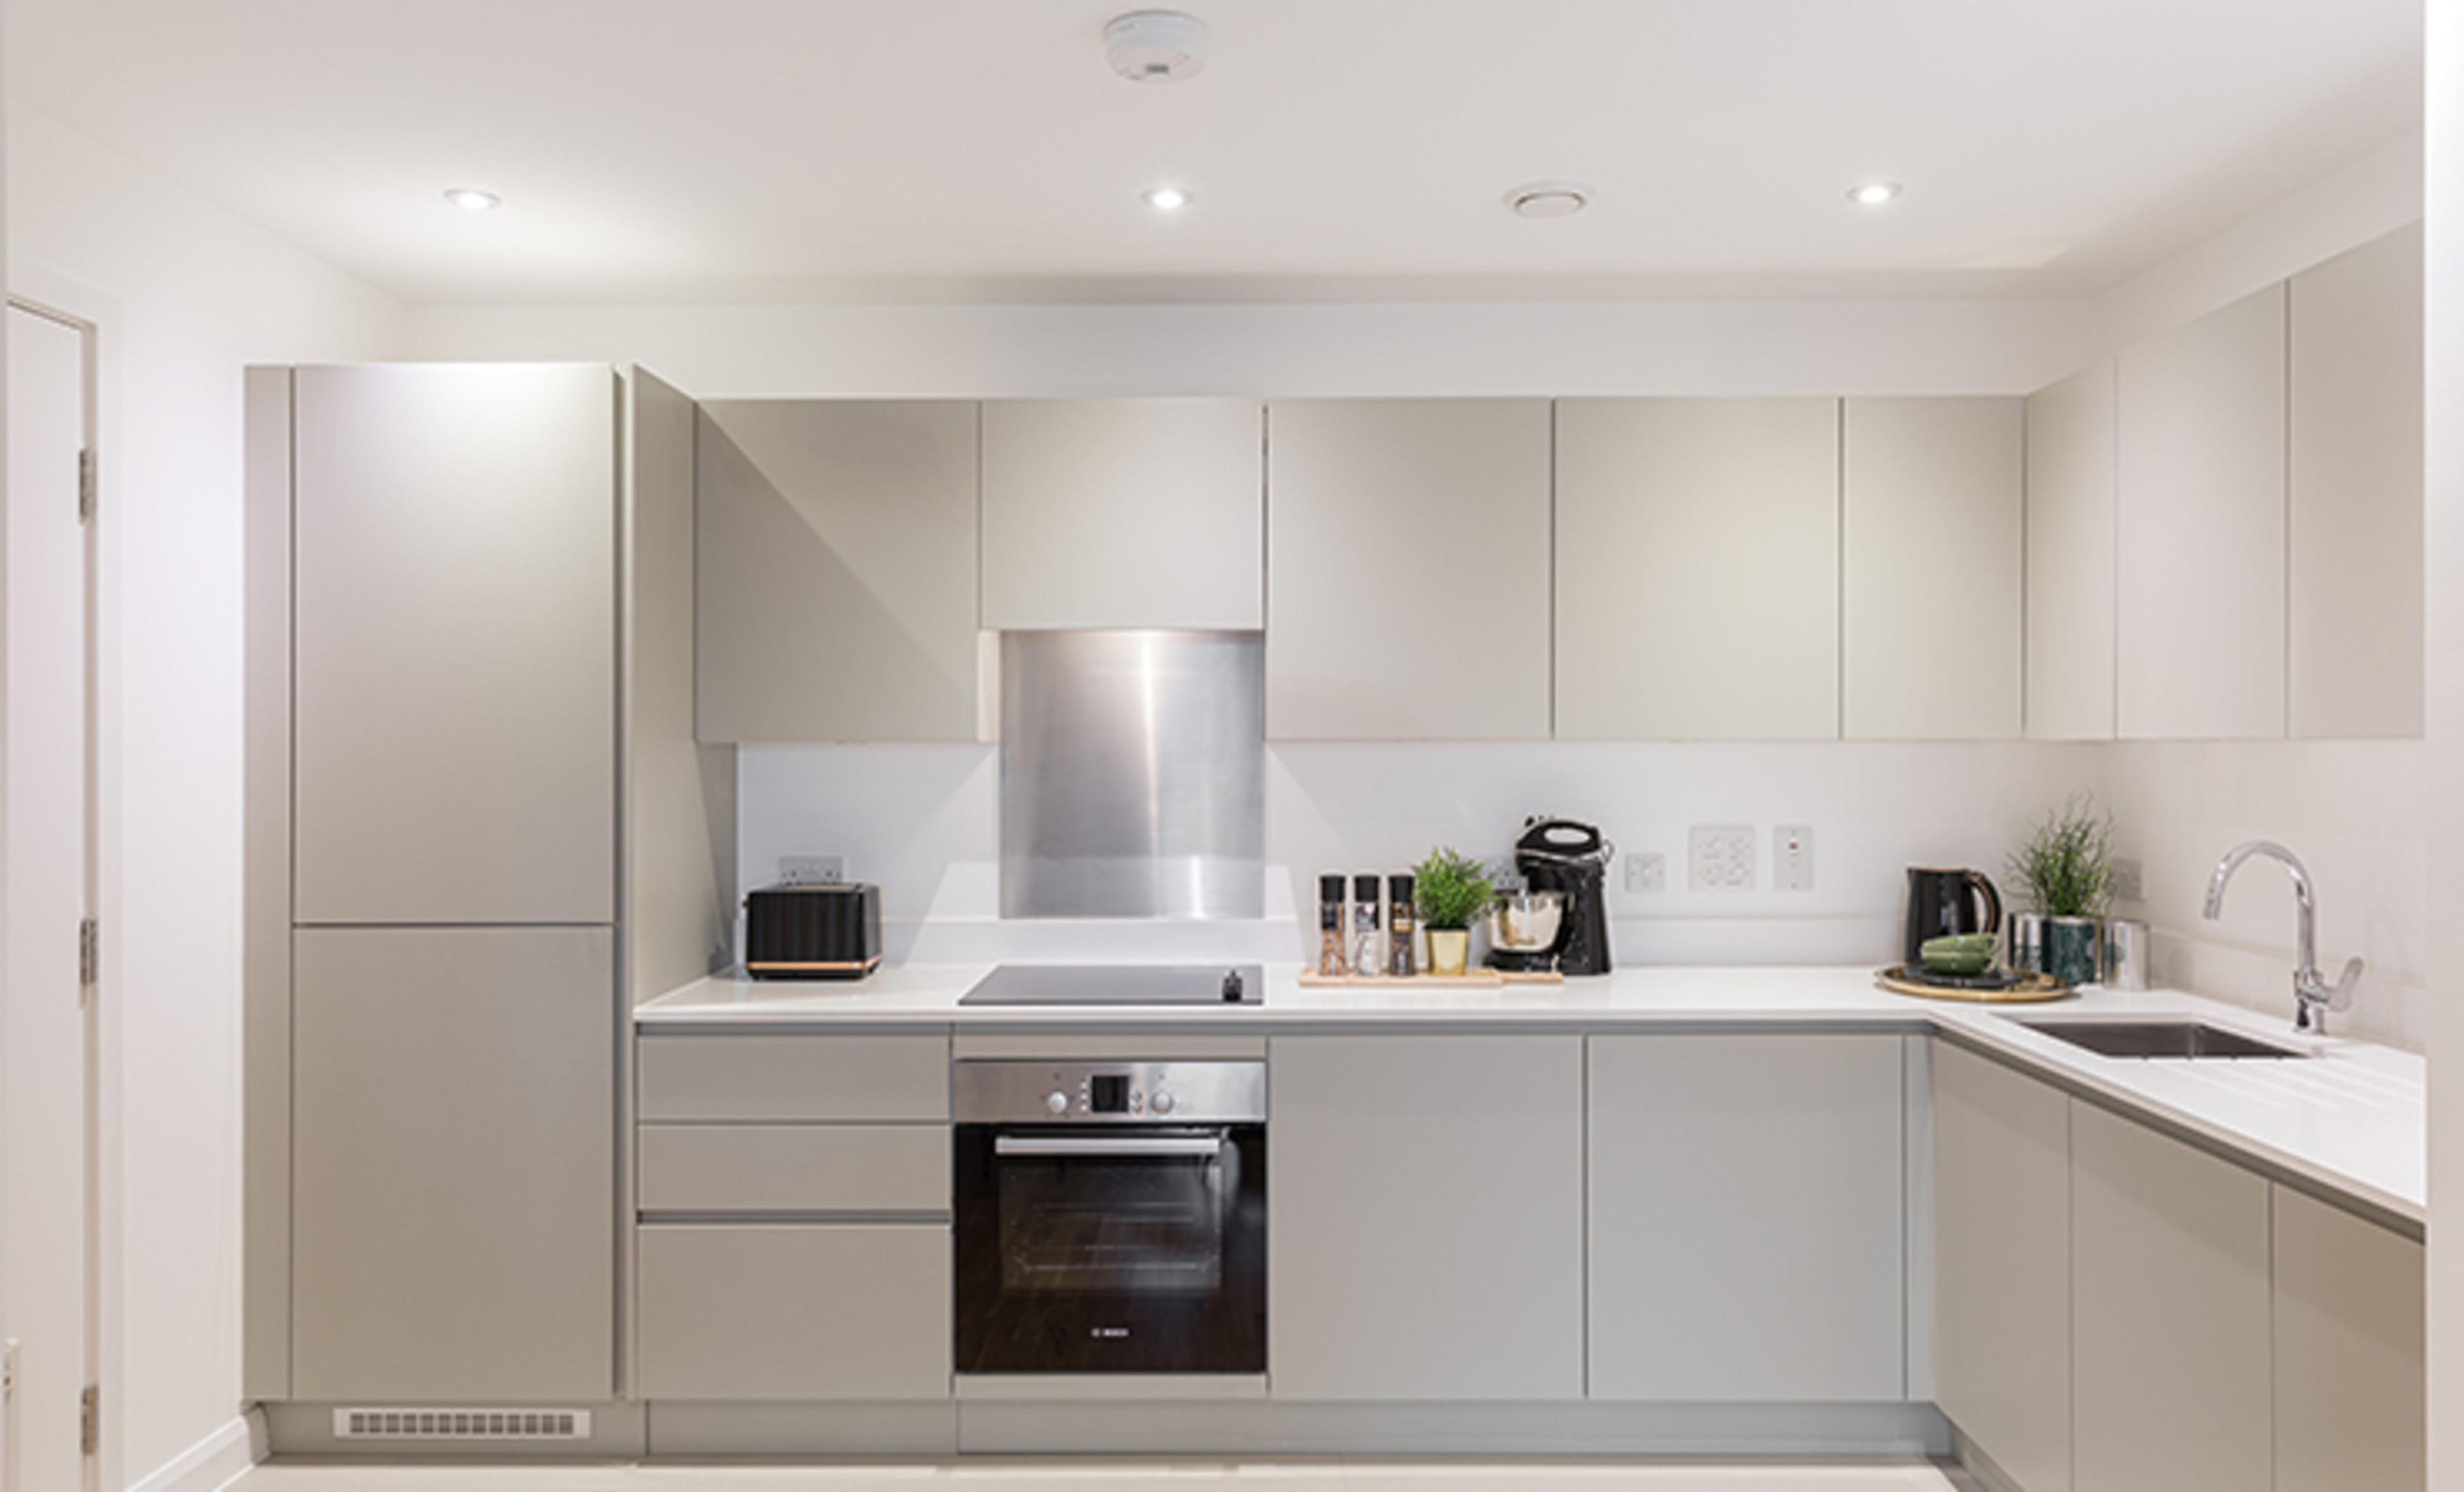 Franklin Court - new two bedroom apartment - kitchen